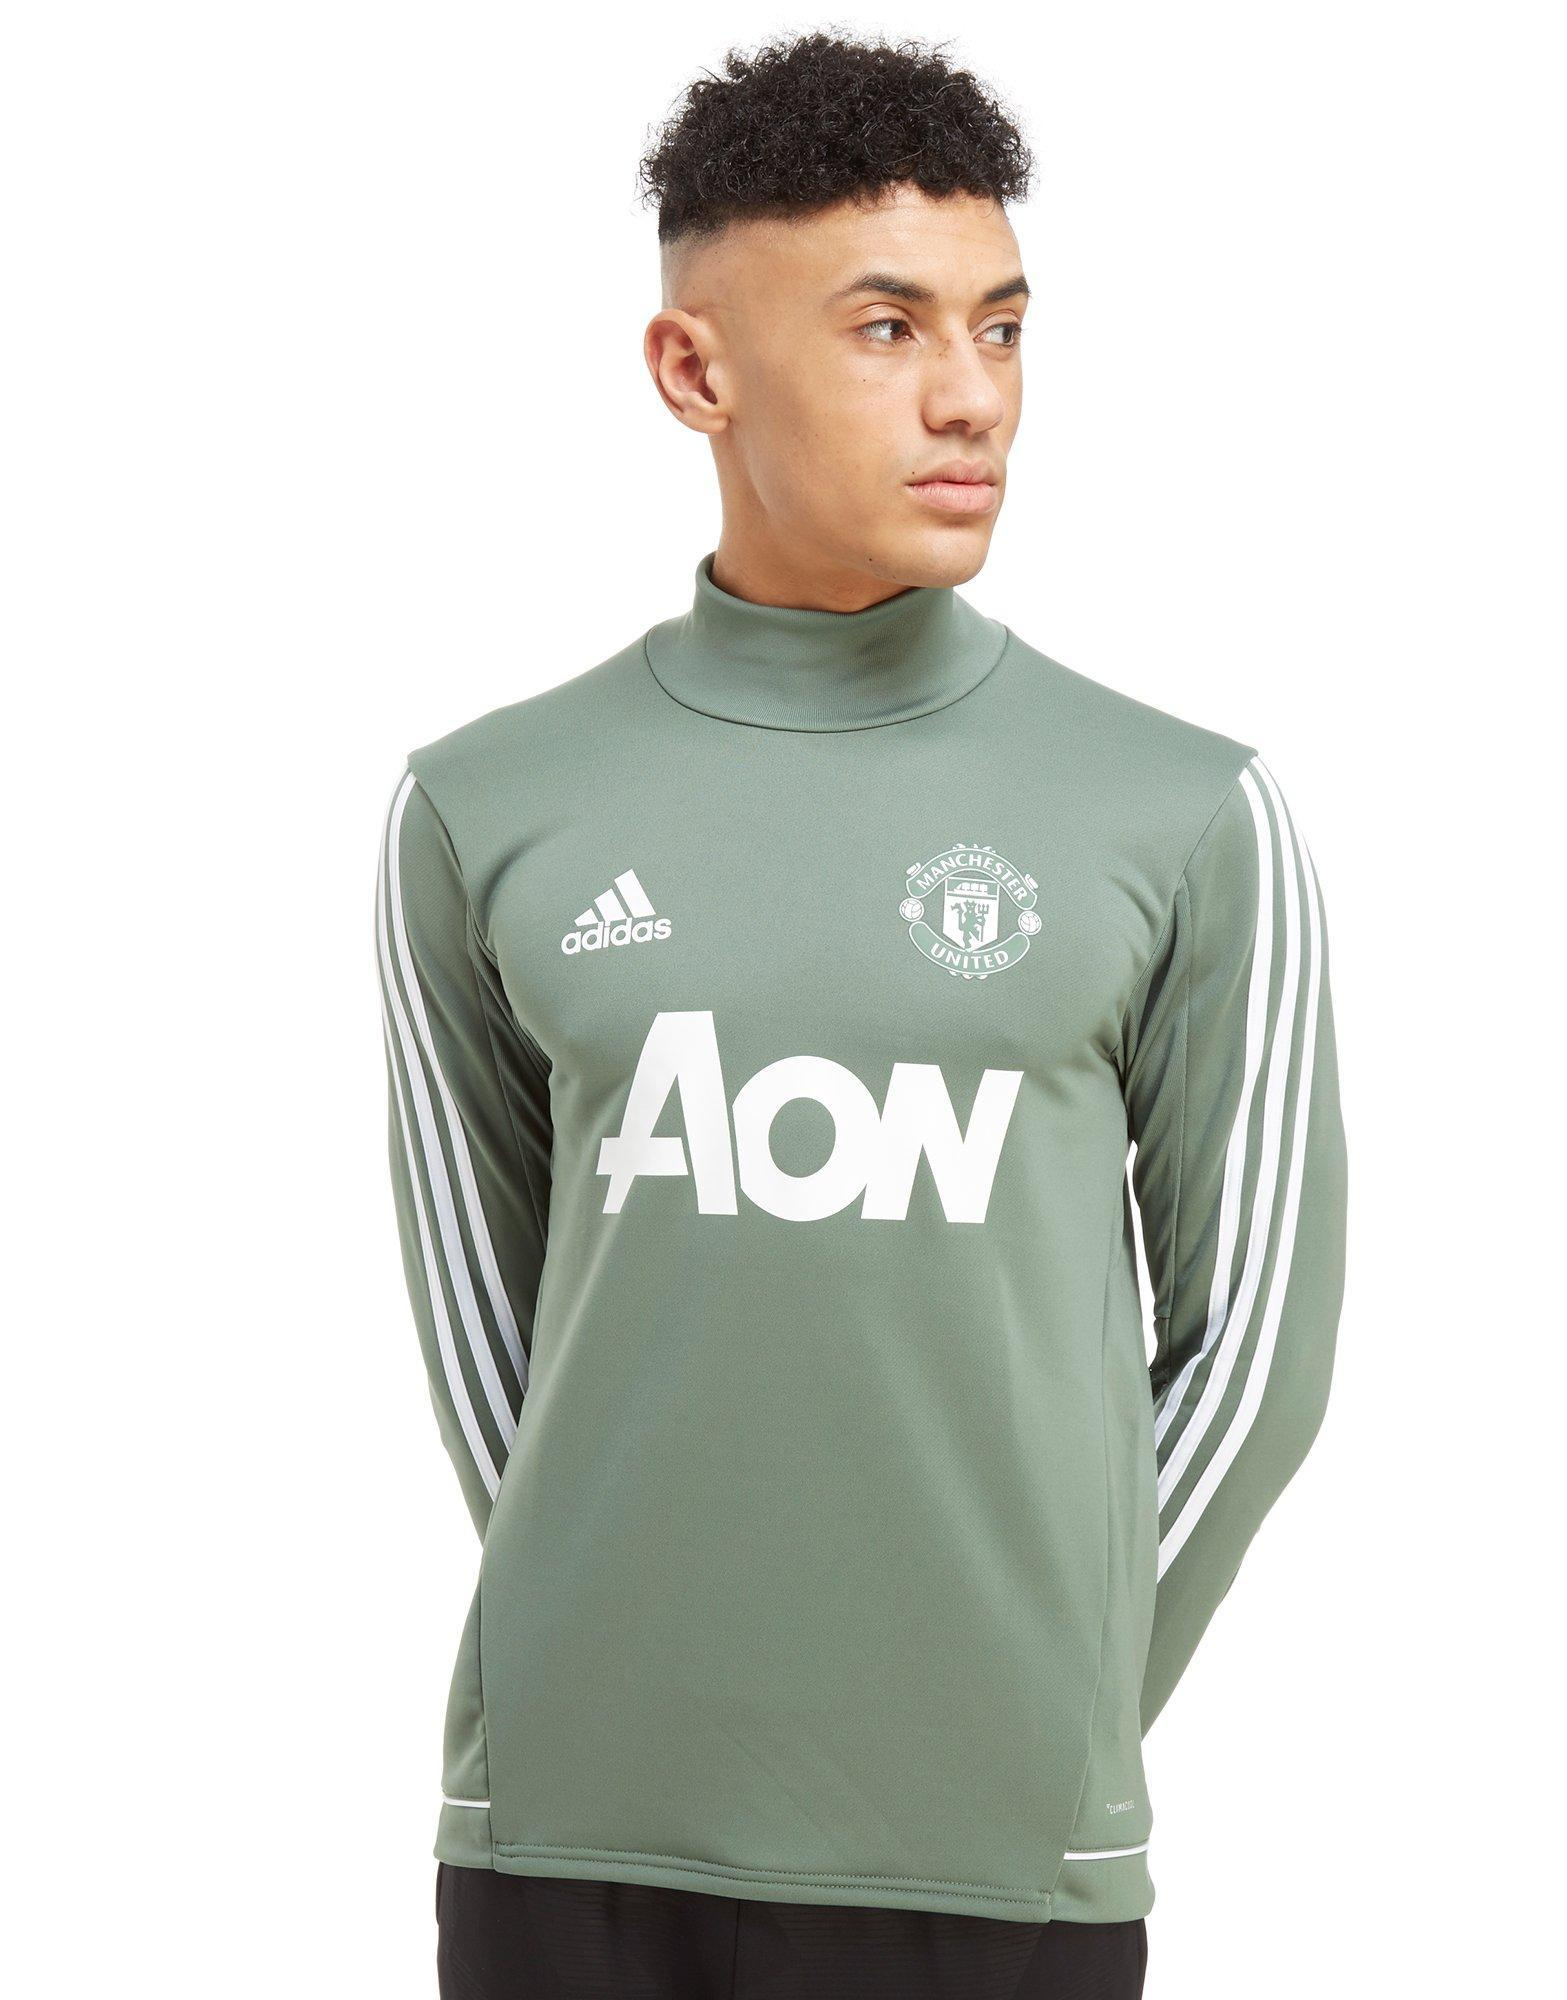 Adidas Synthetic Manchester United Fc Training Top In Green White Green For Men Lyst